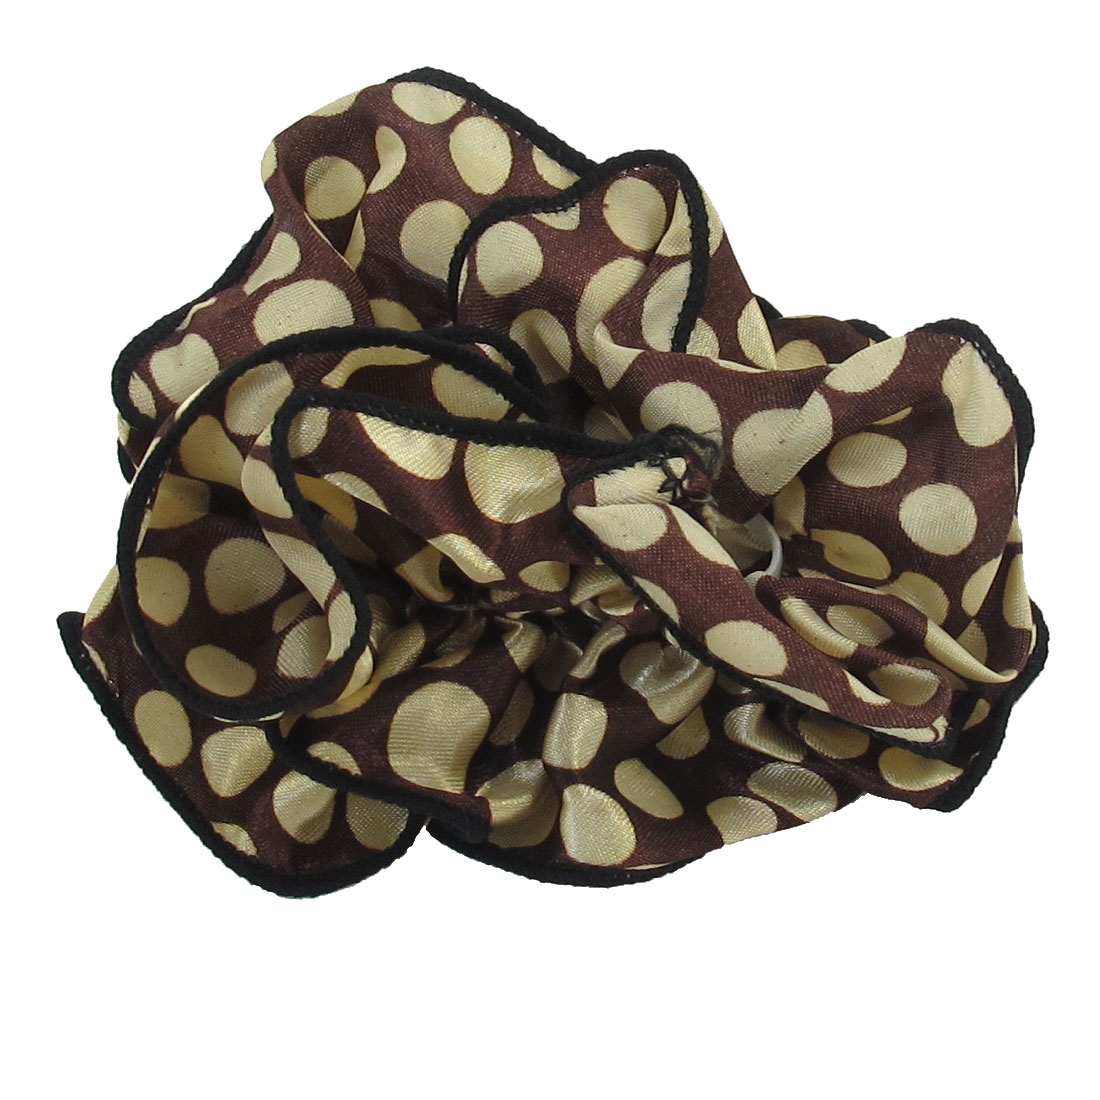 Women Beige Dots Printed Brown Chiffon Stretchy Ponytail Holder Hair Band